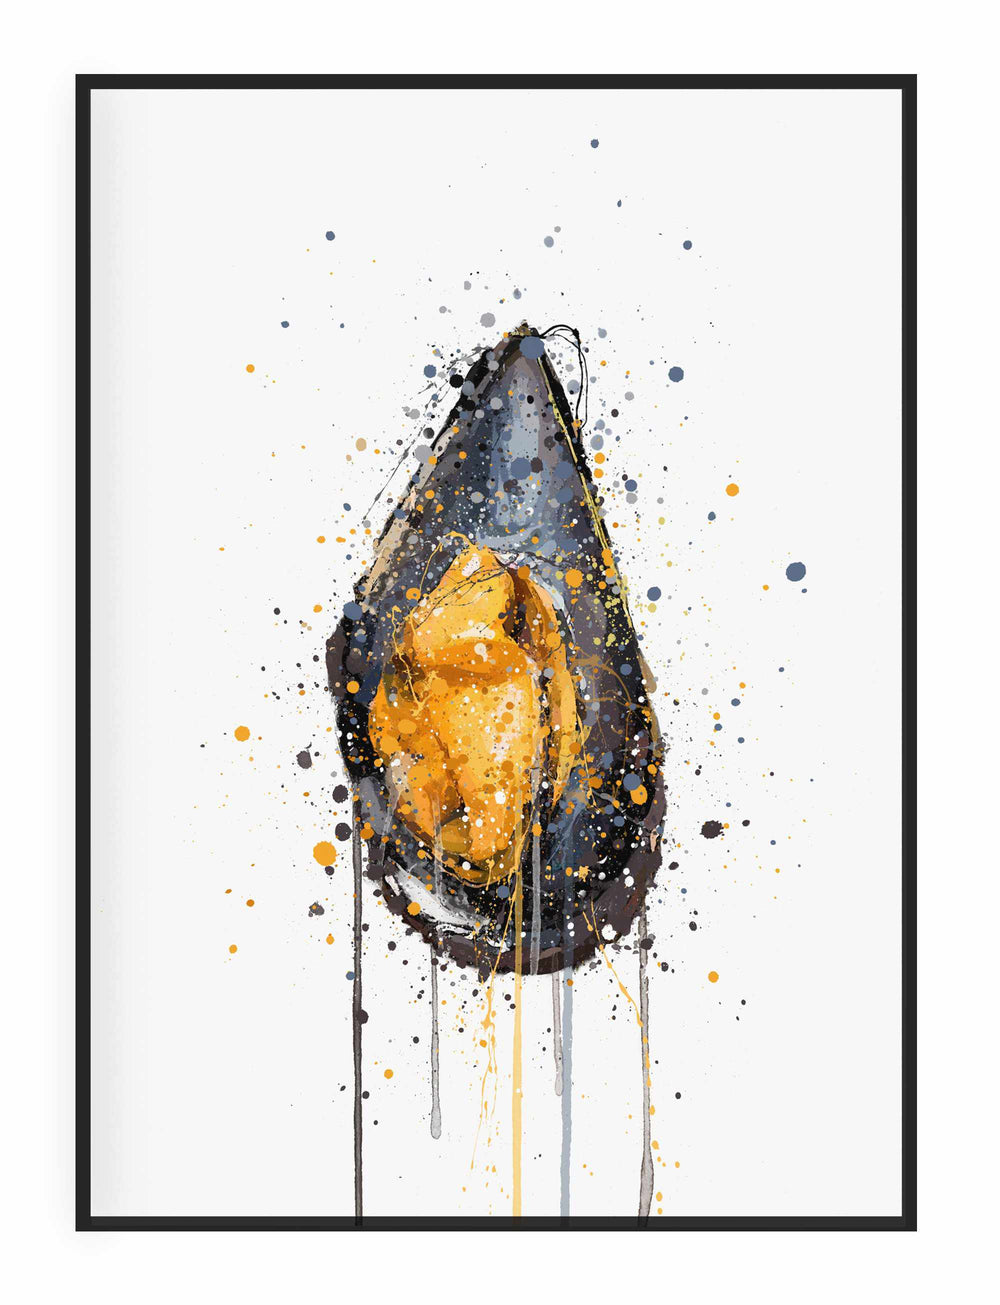 Seafood Wall Art Print 'Mussel'-We Love Prints